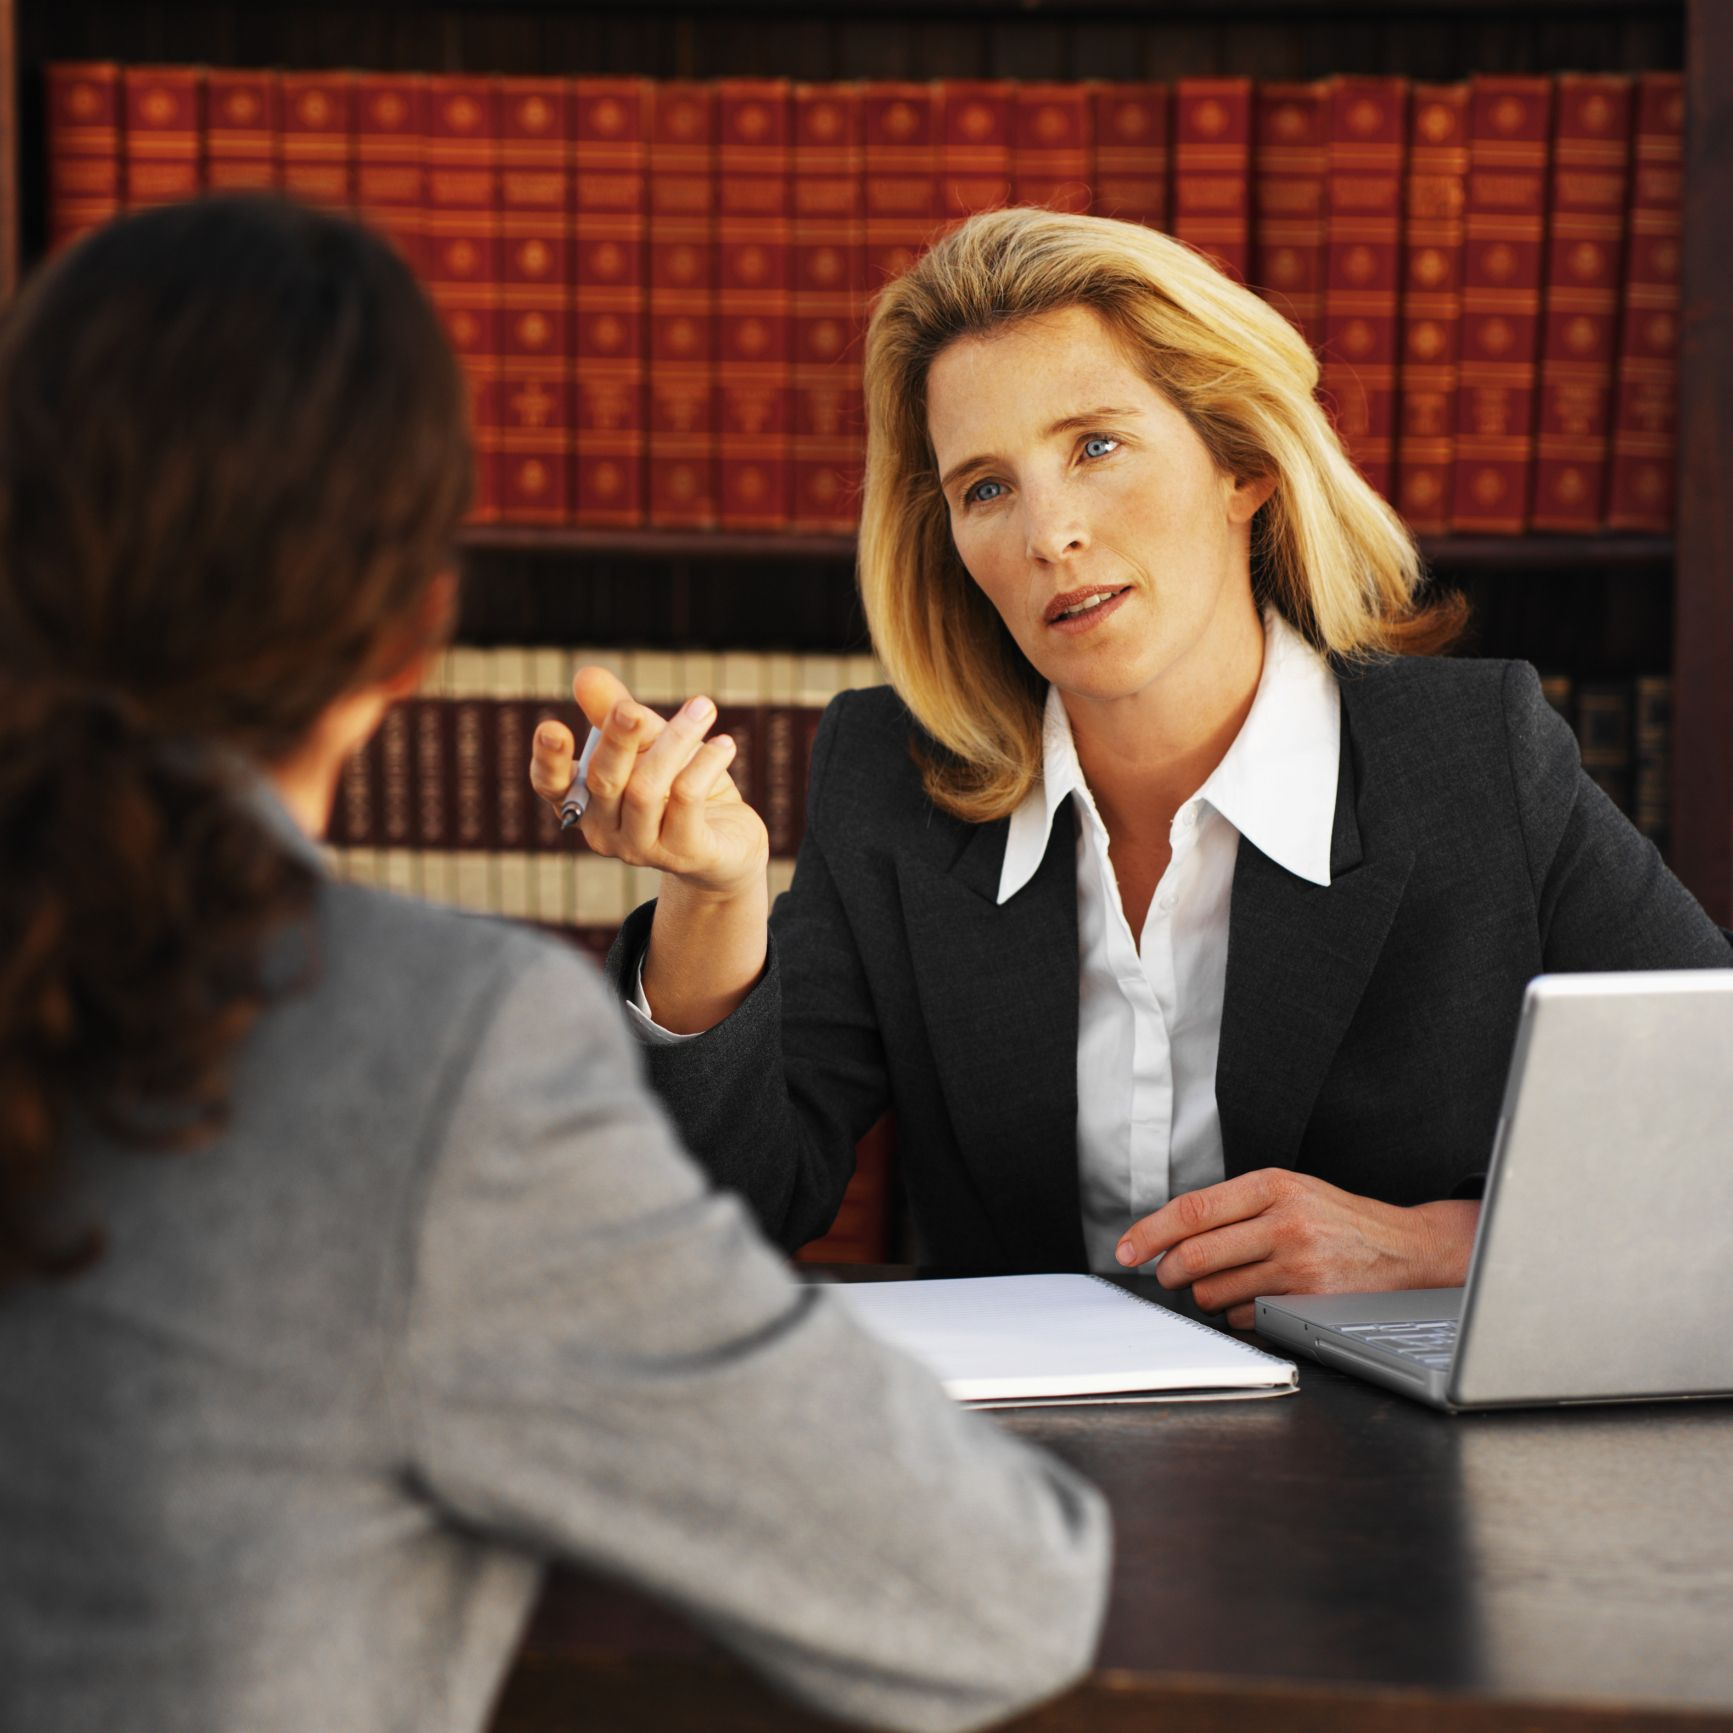 How To Deal When You Disagree With Your Attorney Career